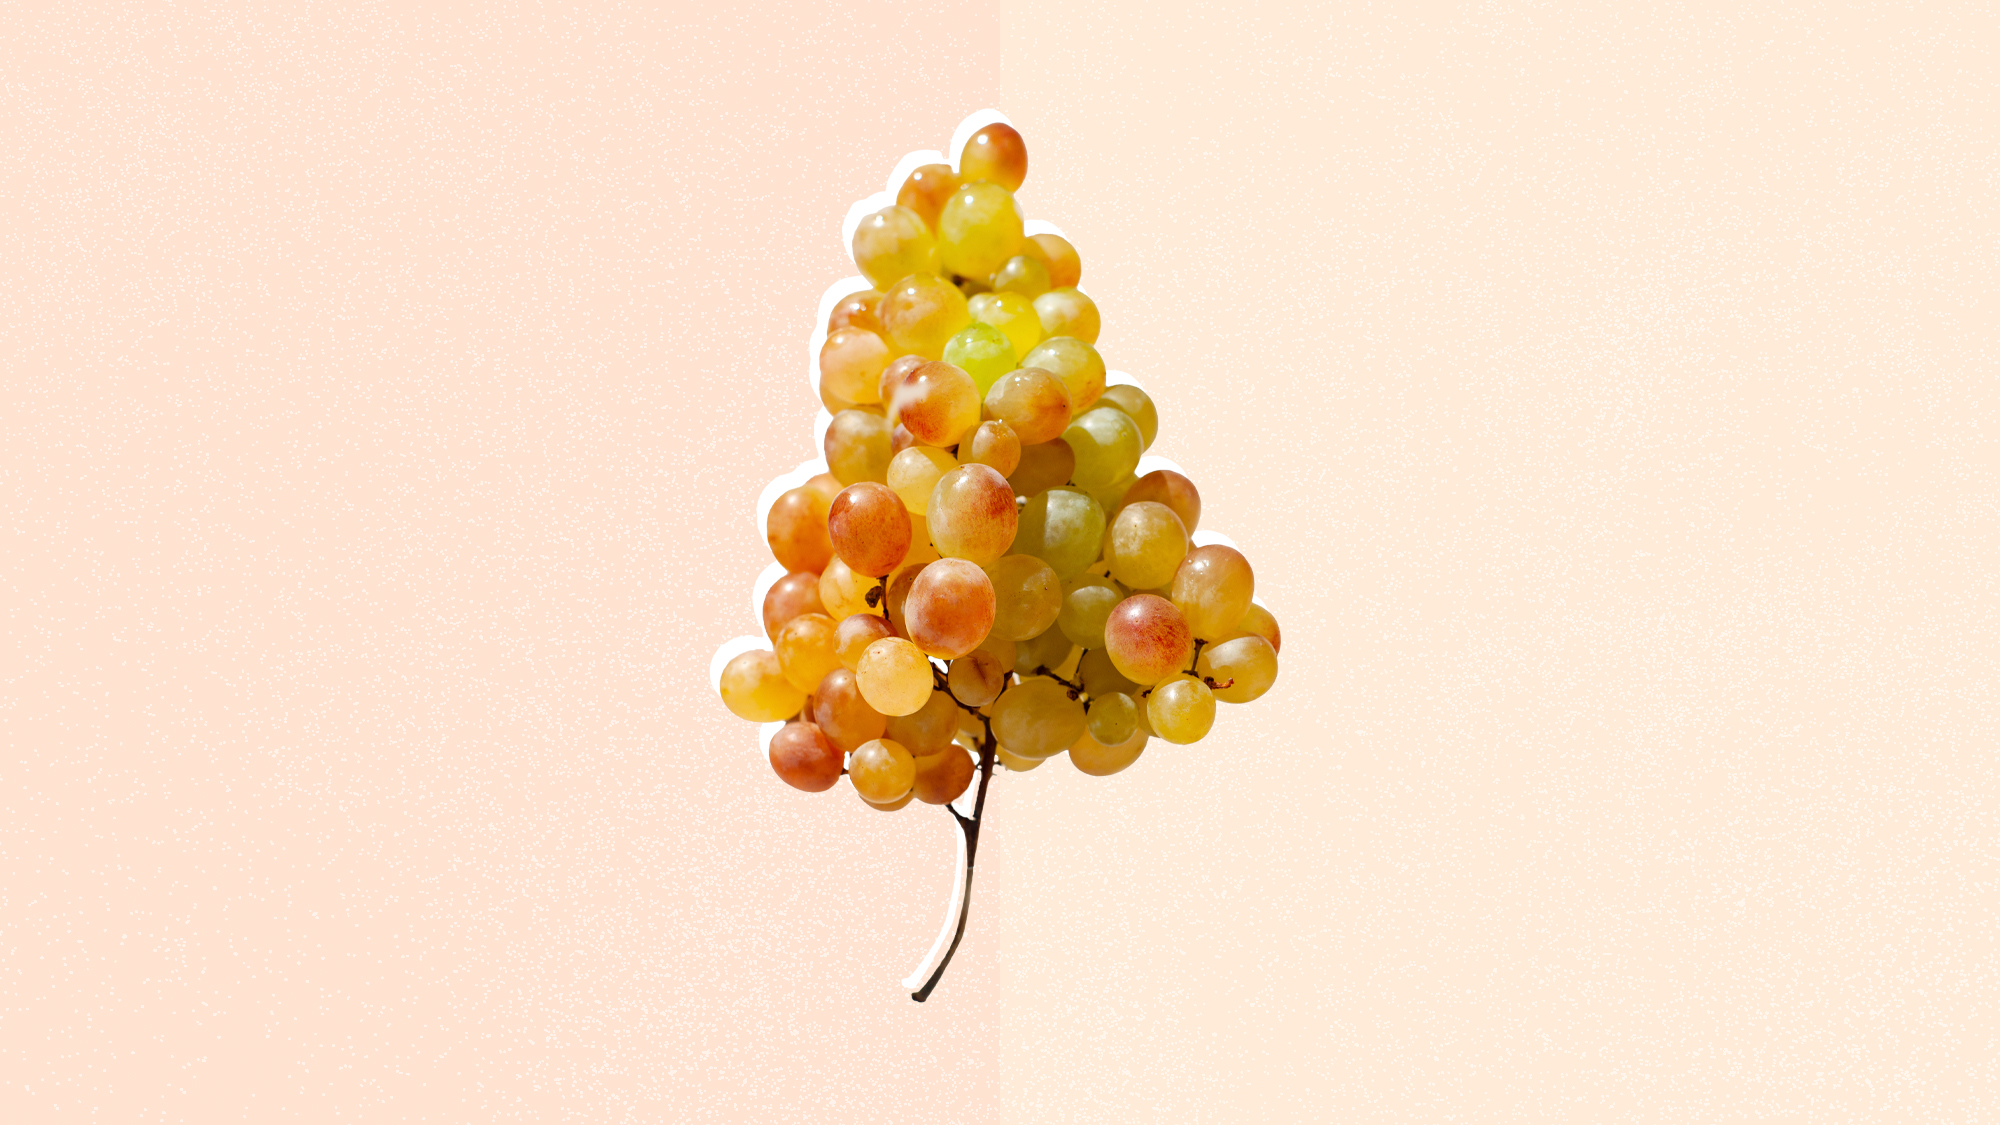 Grapes on a designed background